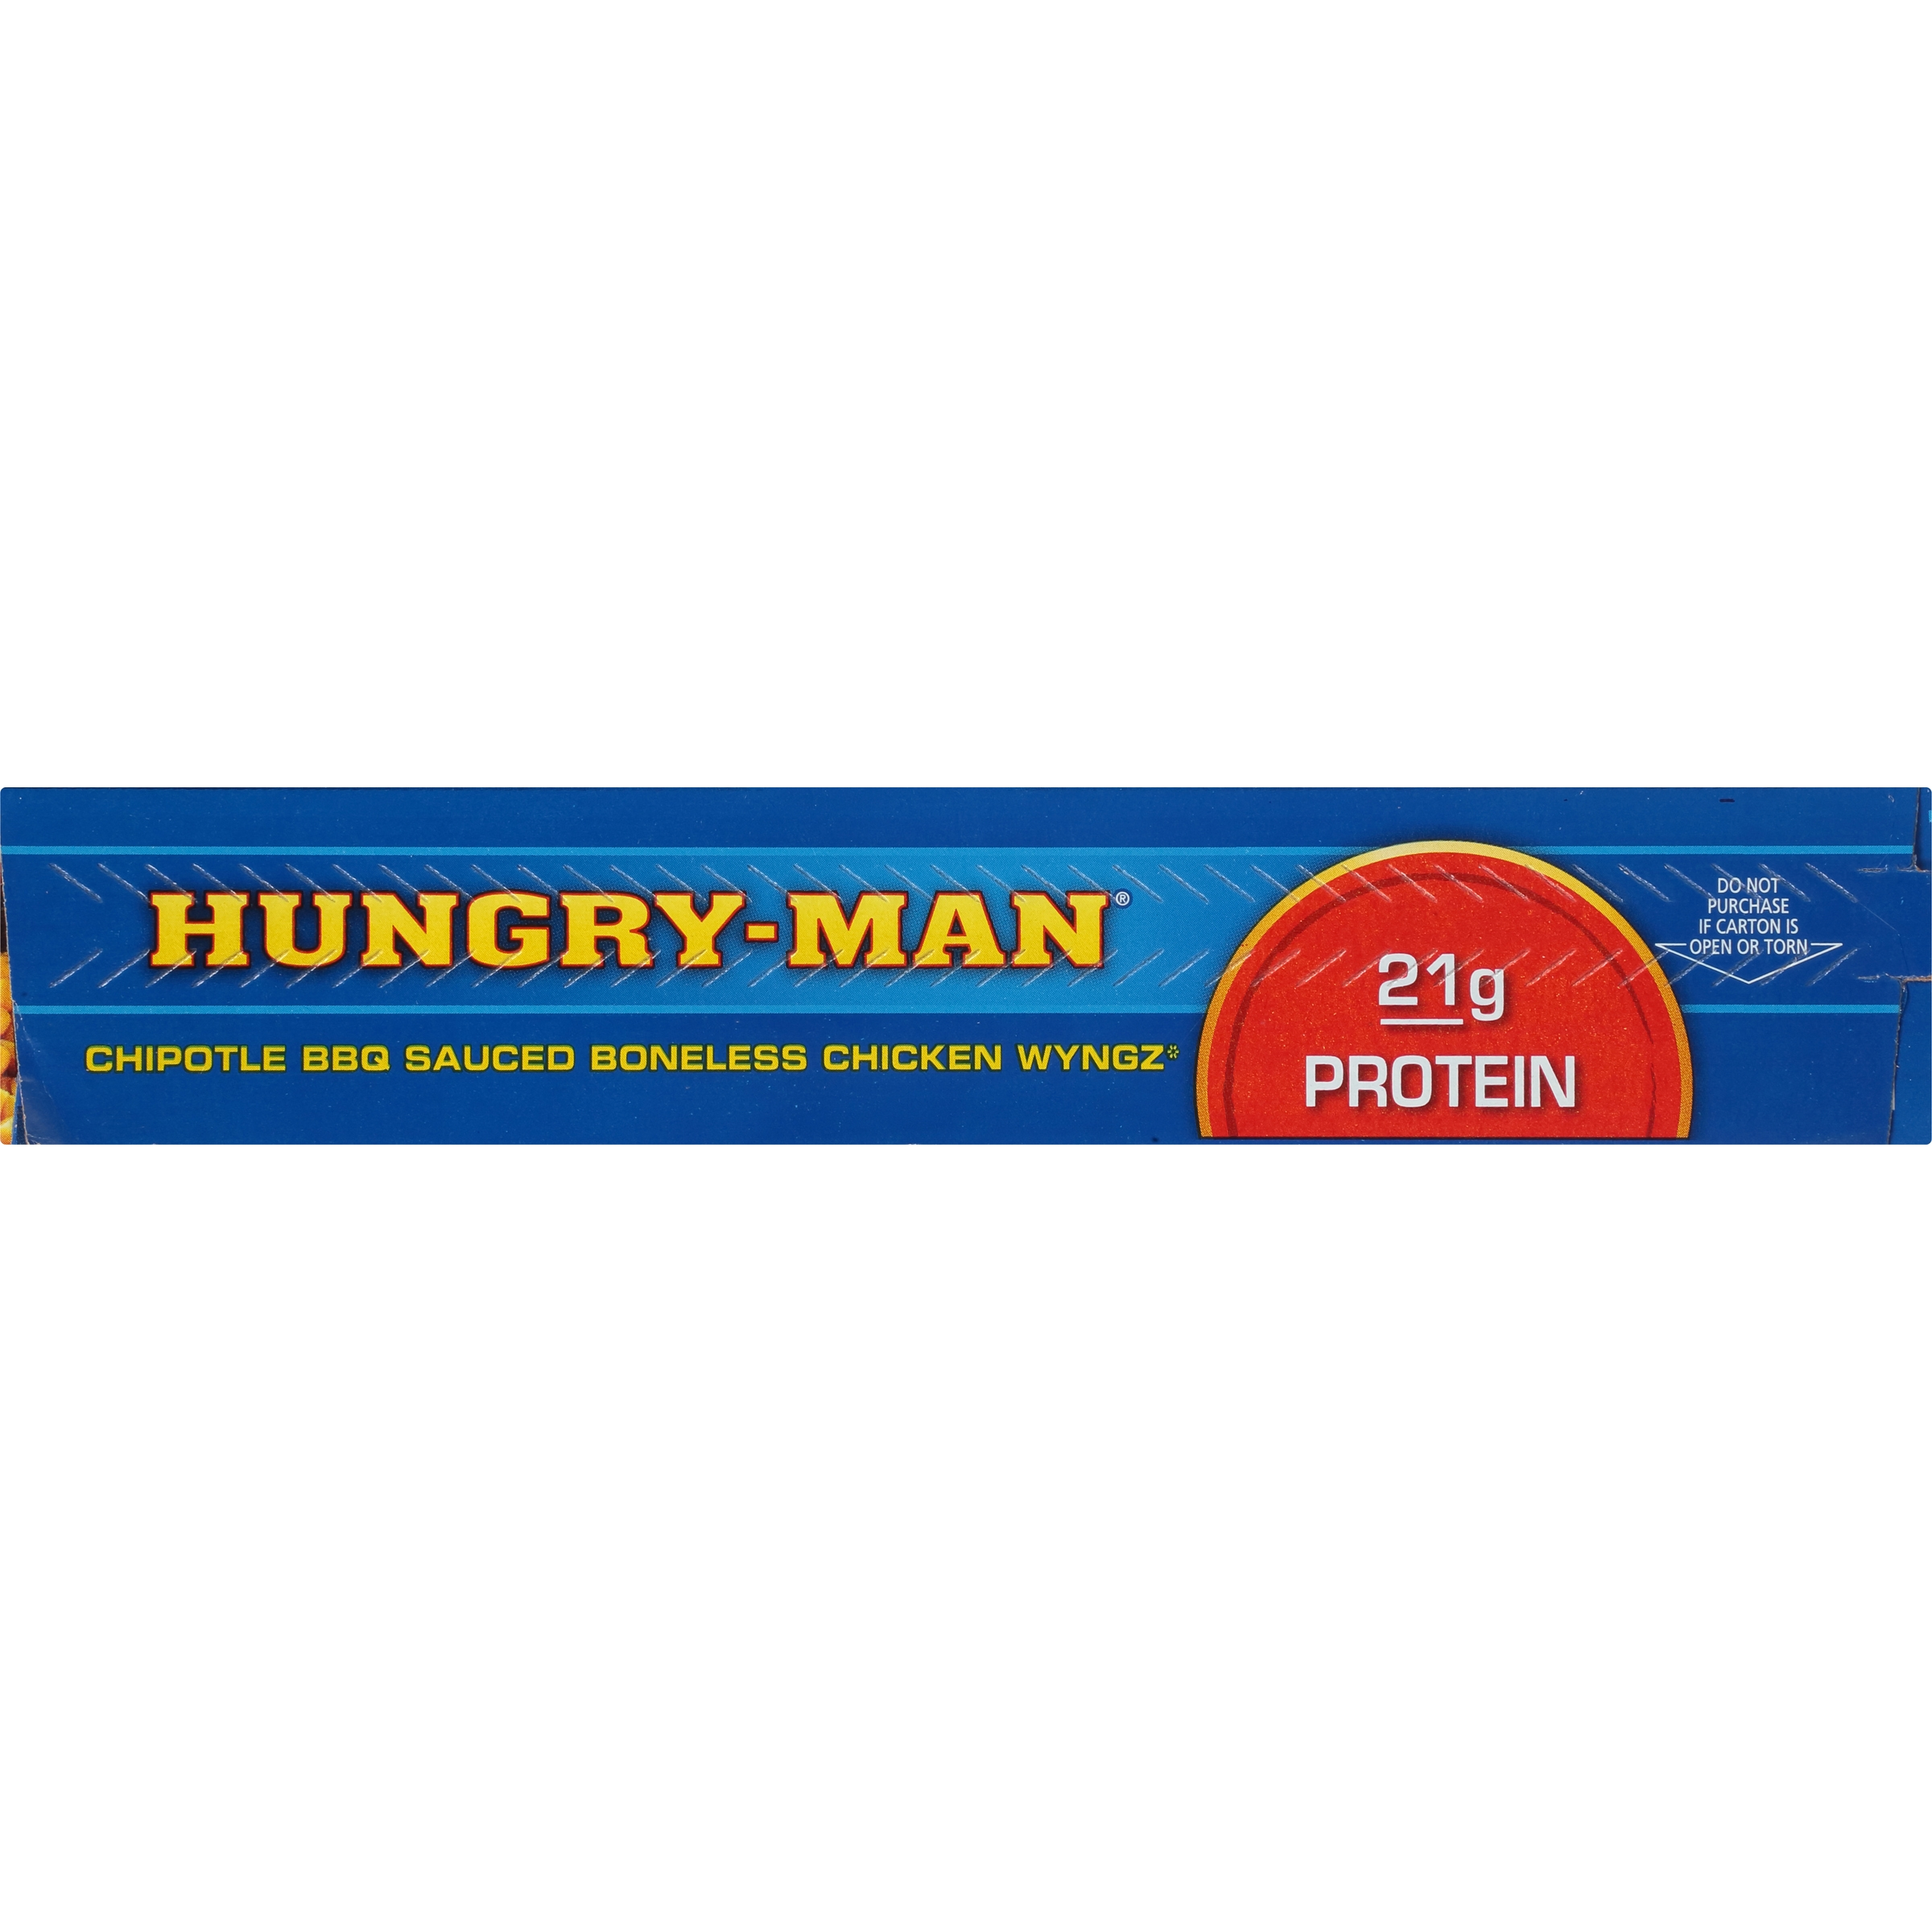 Hungry-Man Limited Edition Chipotle BBQ Sauced Boneless Chicken ...